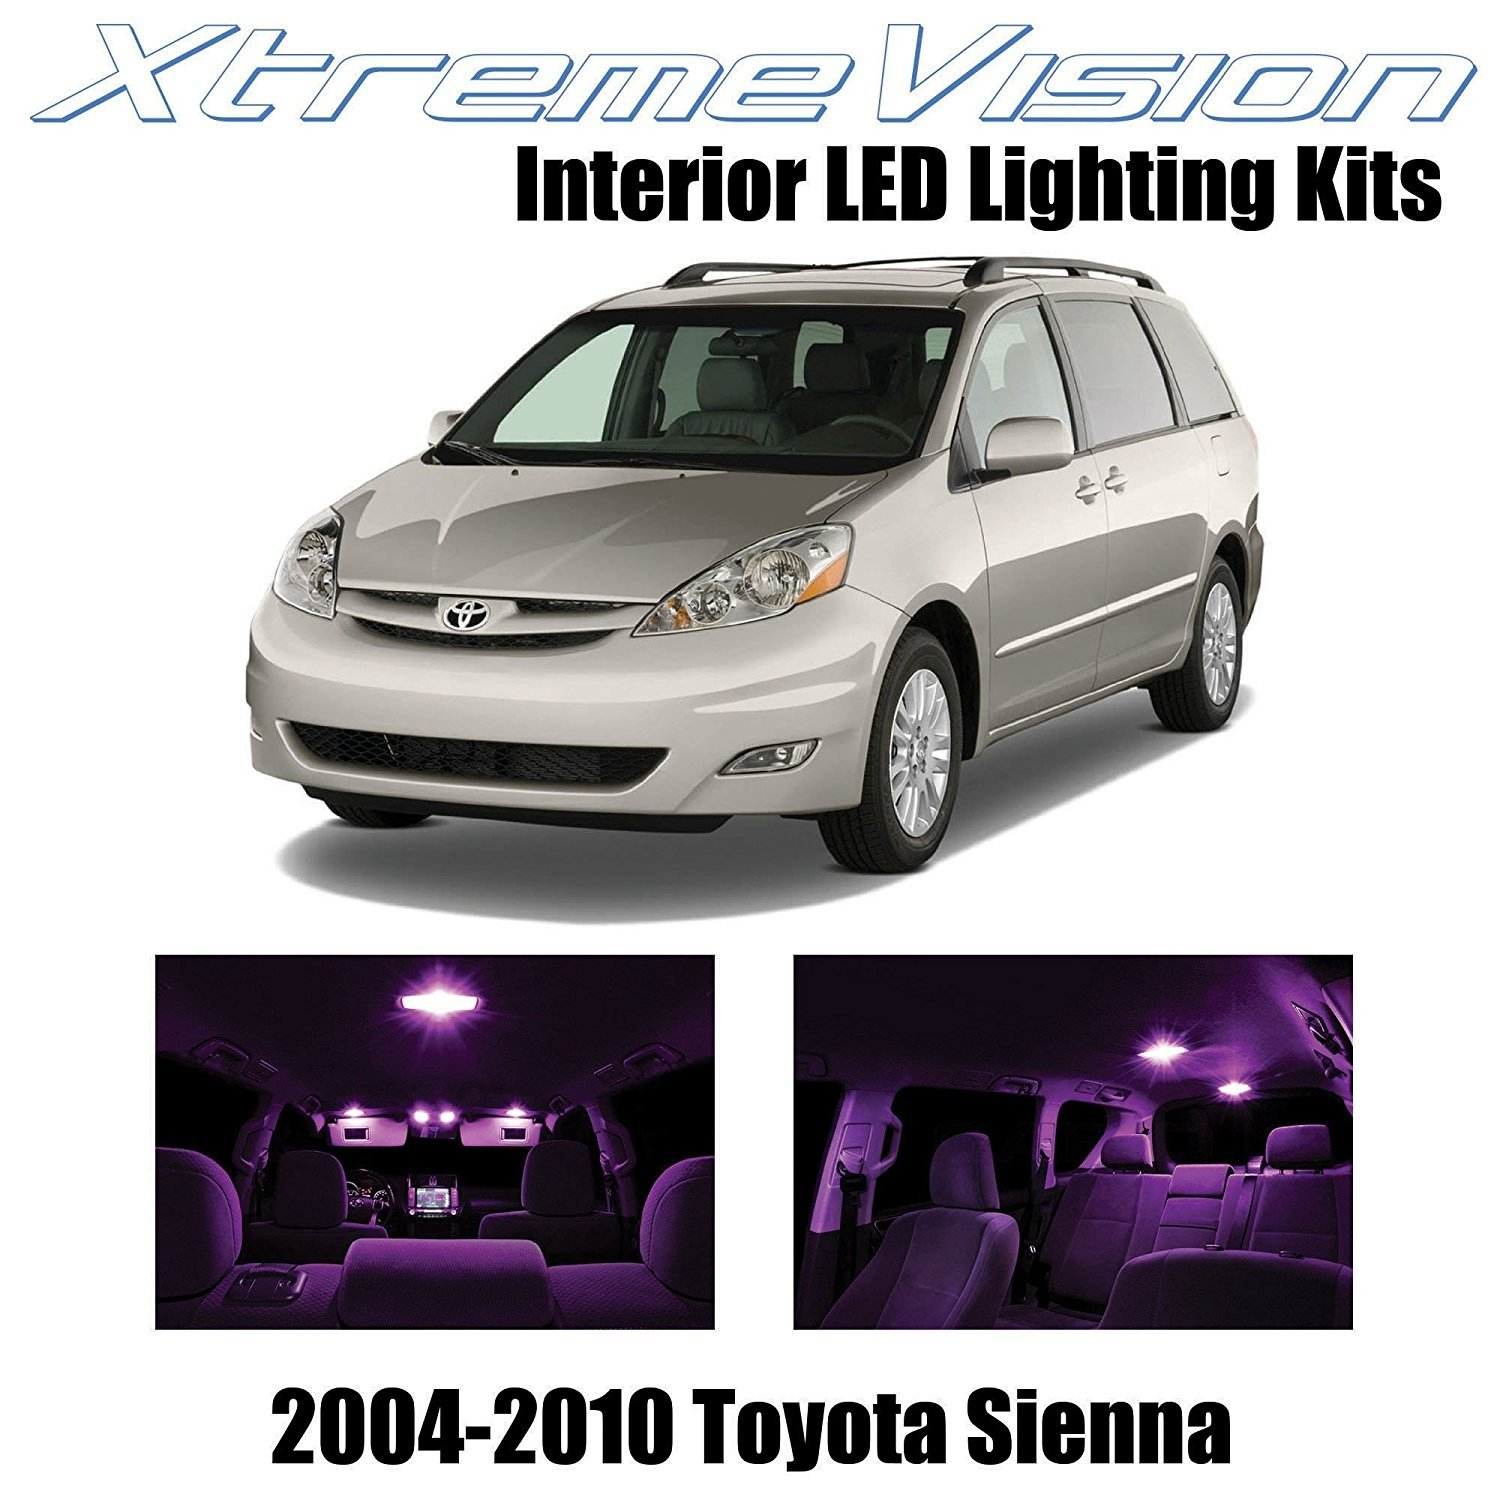 Car Led Interior Lights For 2019 Toyota Sequoia Sienna: XtremeVision LED For Toyota Sienna 2004-2010 (14 Pieces